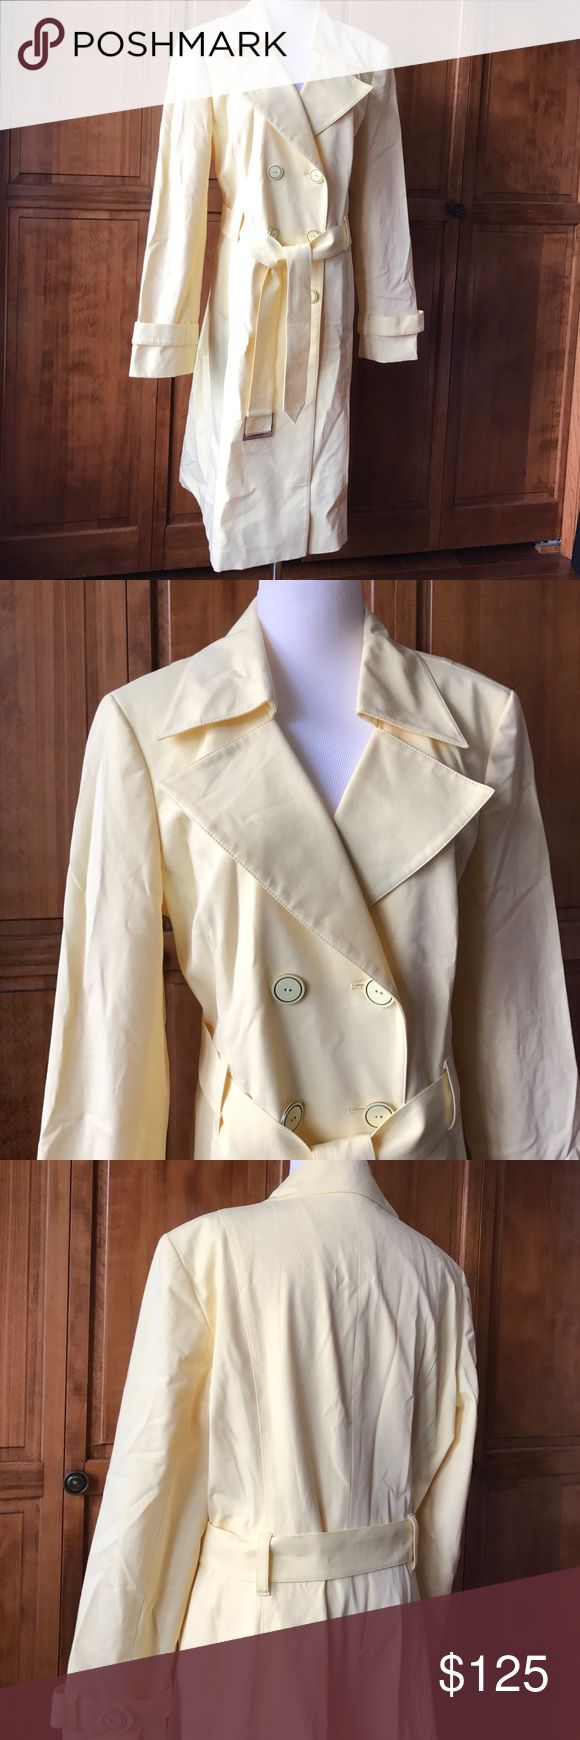 CLASSIQUES ENTIER Designer Trench Coat | Size L Don't miss out on the beautiful designer trench coat. In like new condition. Never worn. The coat does have a lining. Shell is 95% cotton 5% spandex. Lining is 93% polyester 7% spandex. This is a  yellow color like the sun ☀️ classiques entier Jackets & Coats Trench Coats